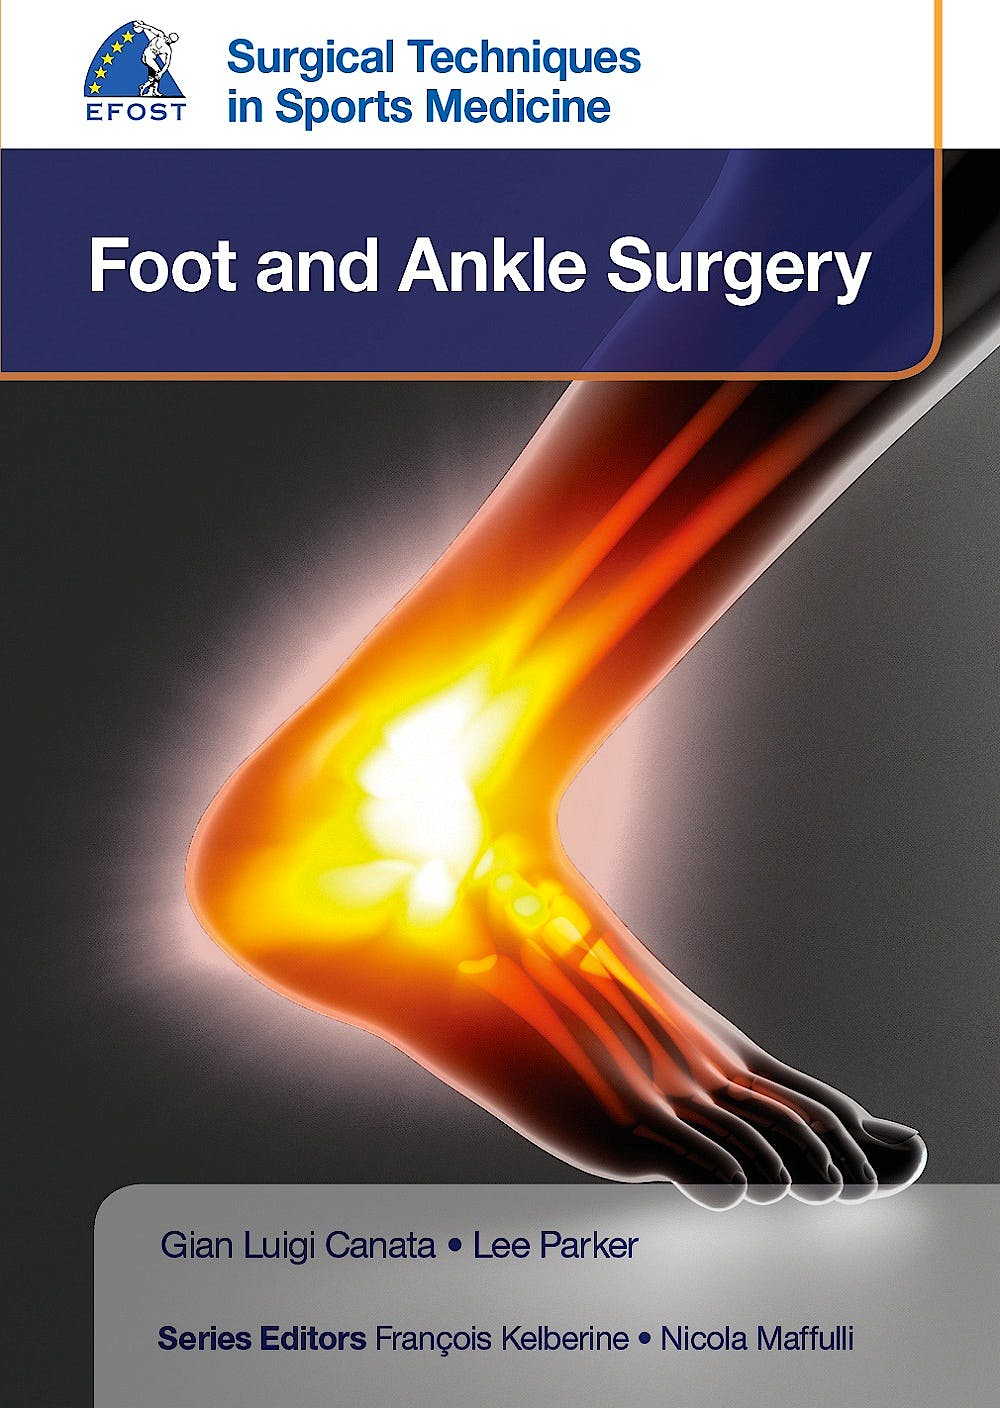 Portada del libro 9781909836341 EFOST Surgical Techniques in Sports Medicine. Foot and Ankle Surgery